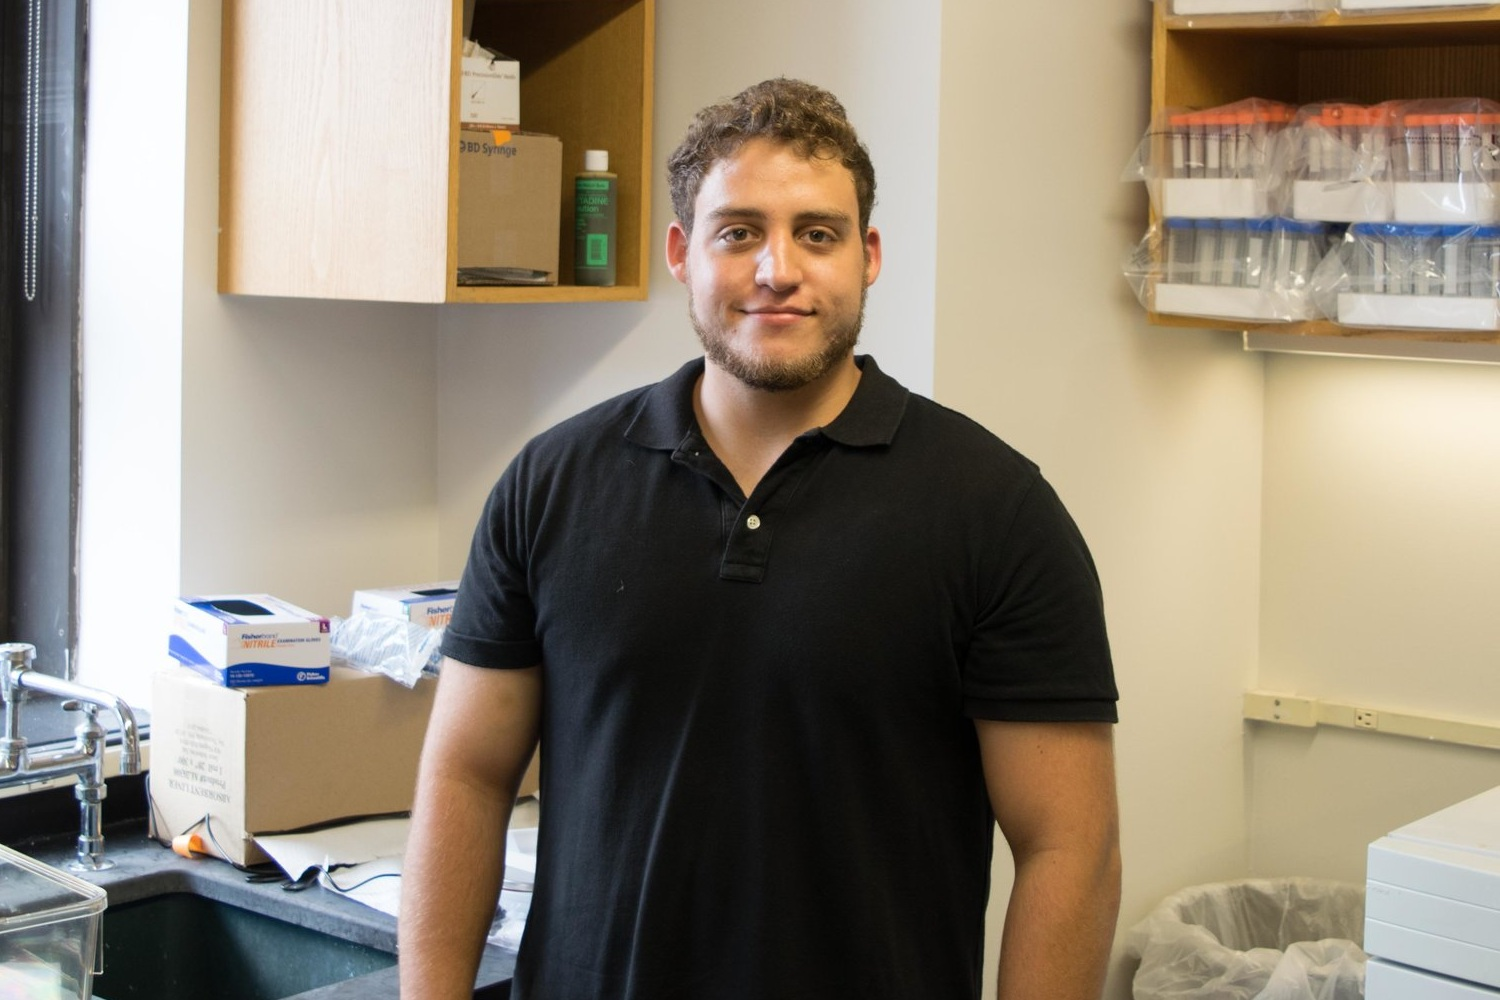 Alec Seidenberg  Alec obtained a degree Behavioral NEUROSCIENCE from Hunter College and is CURRENTLY working in the Laboratory of Dr.  Dani Dumitriu at Columbia University.